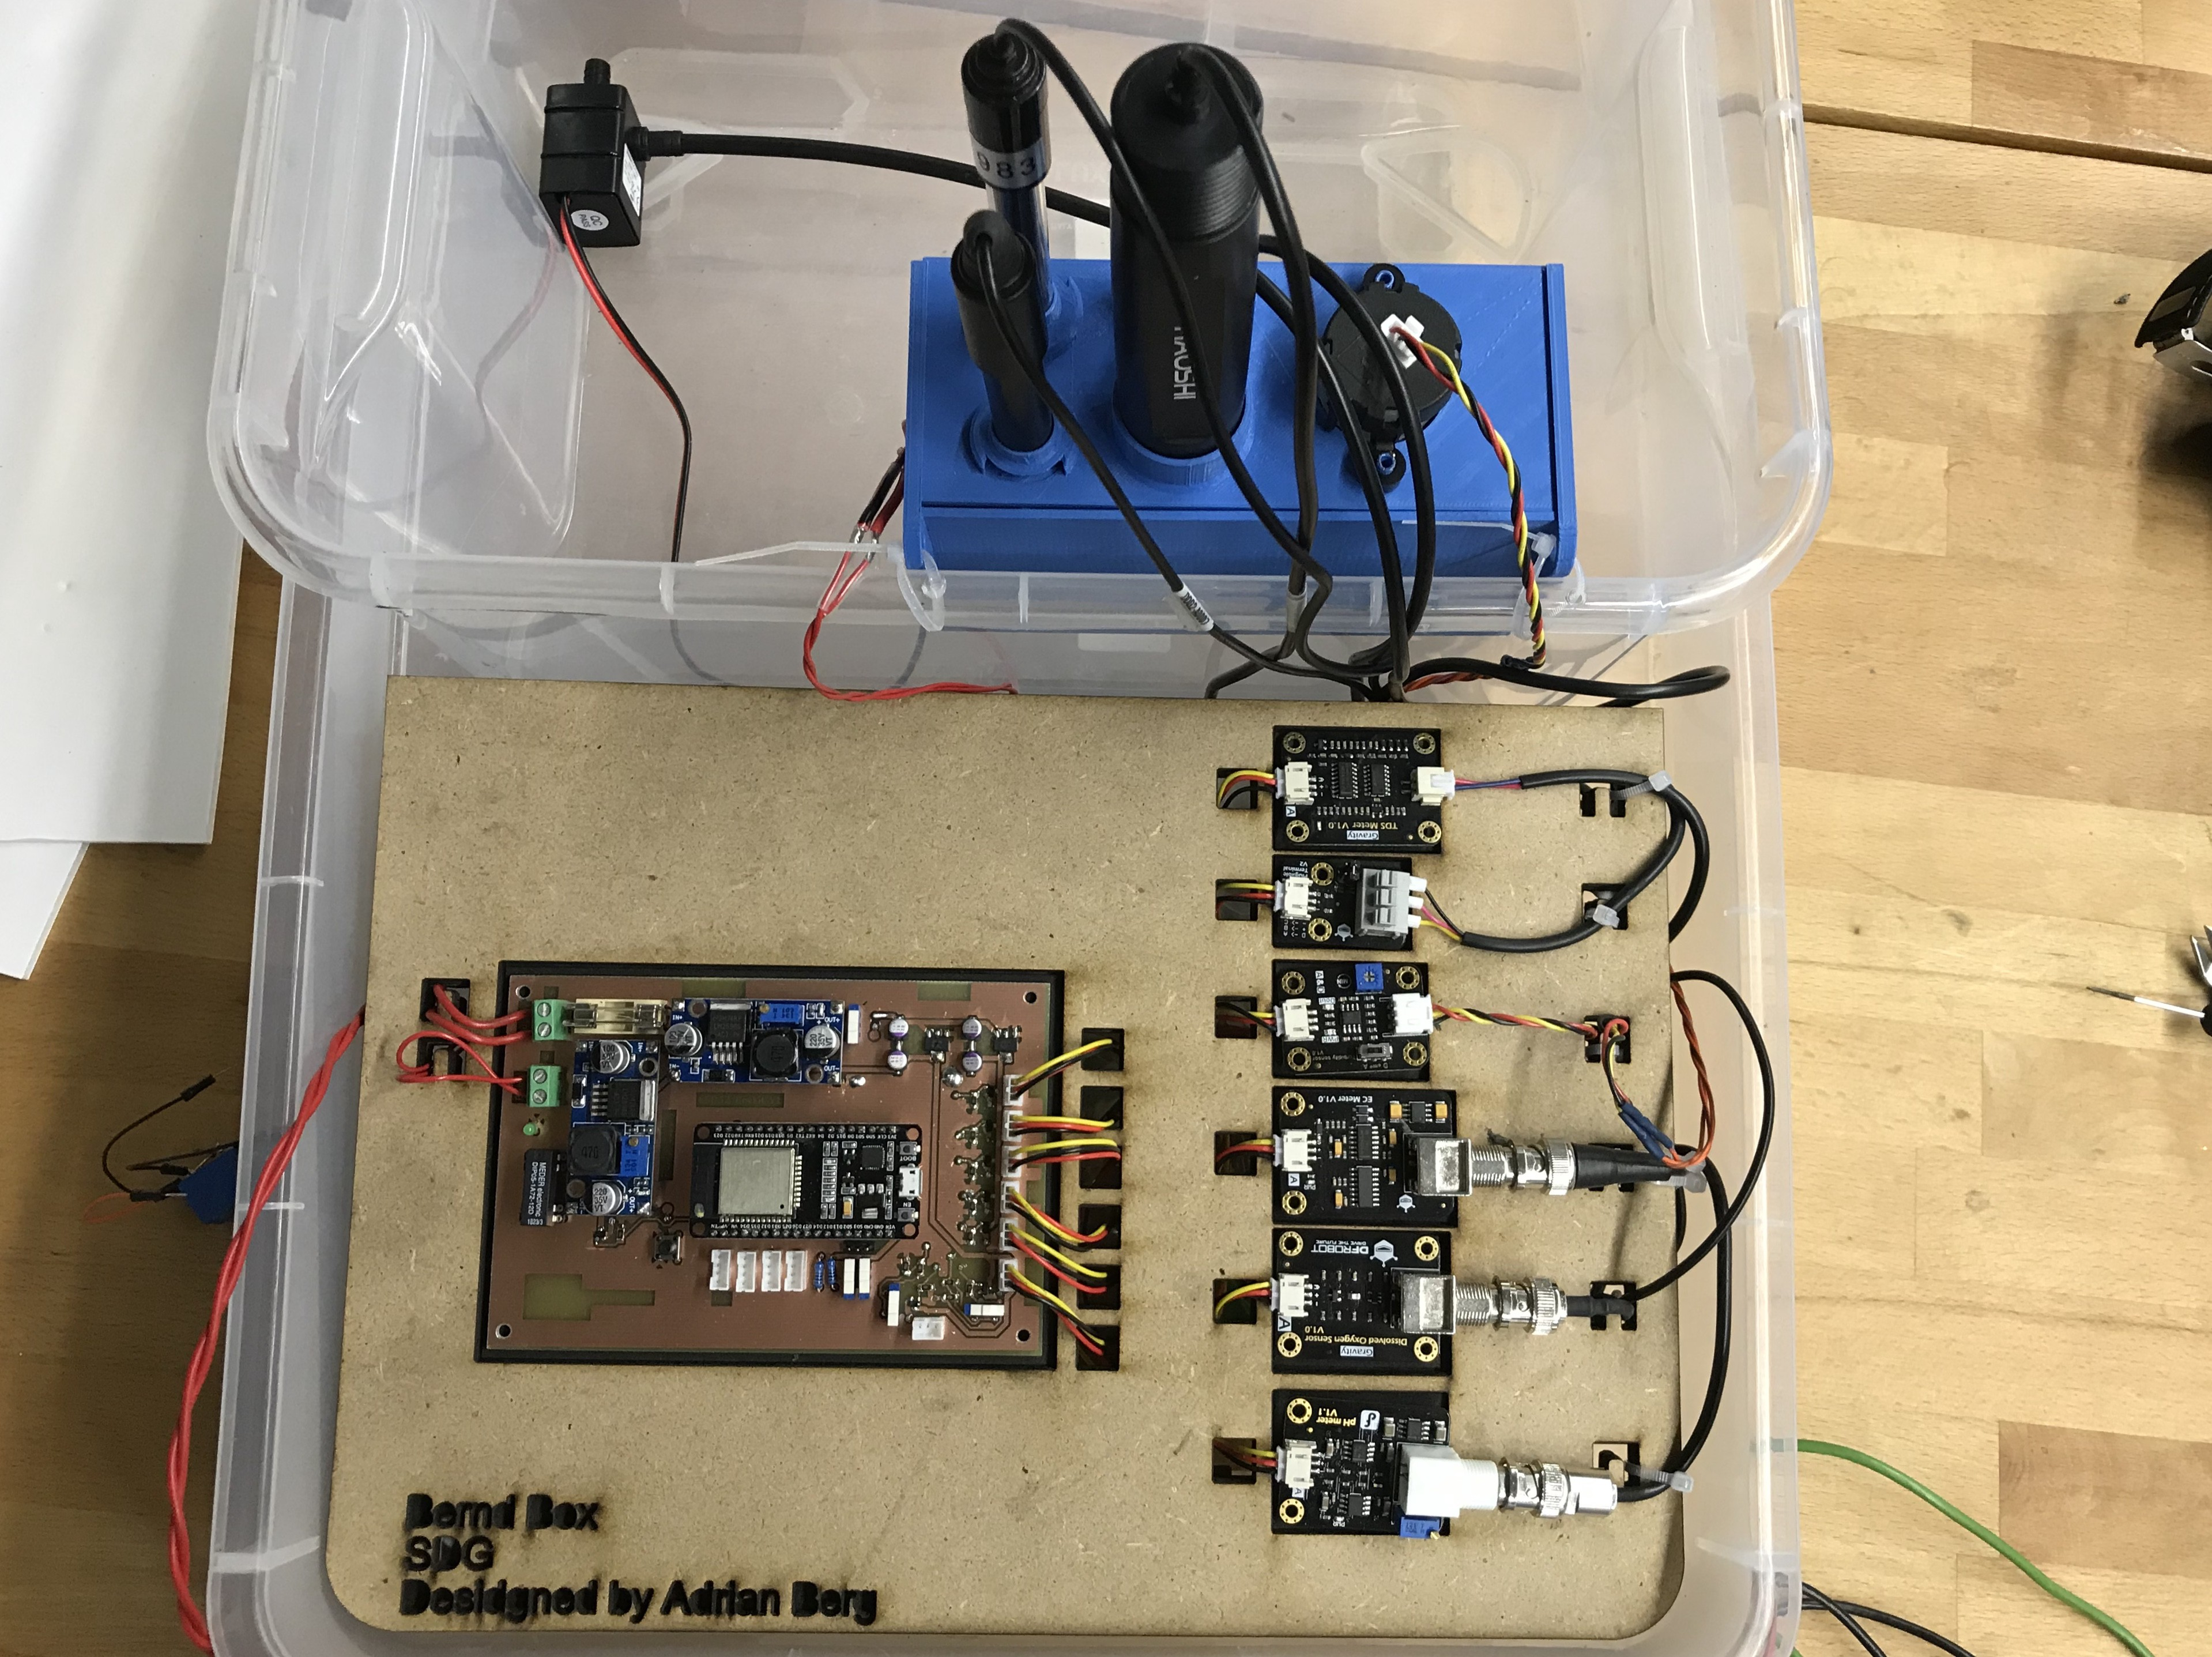 A prototype setup of a sensor controller consisting of a PCB, sensor electronic and a 3D printed case.